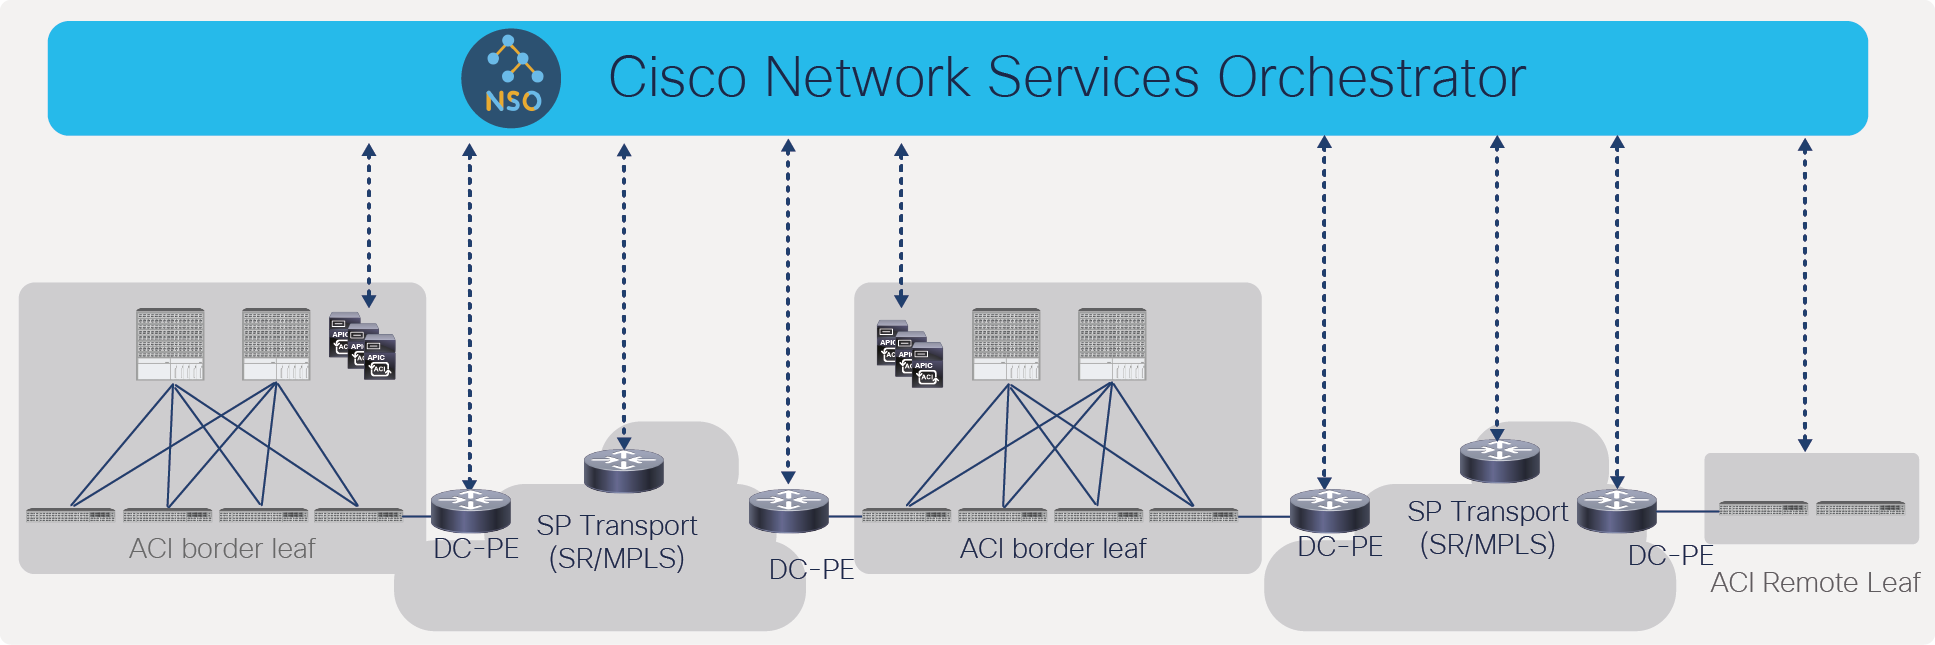 Cross-domain orchestration from Cisco Network Services Orchestrator